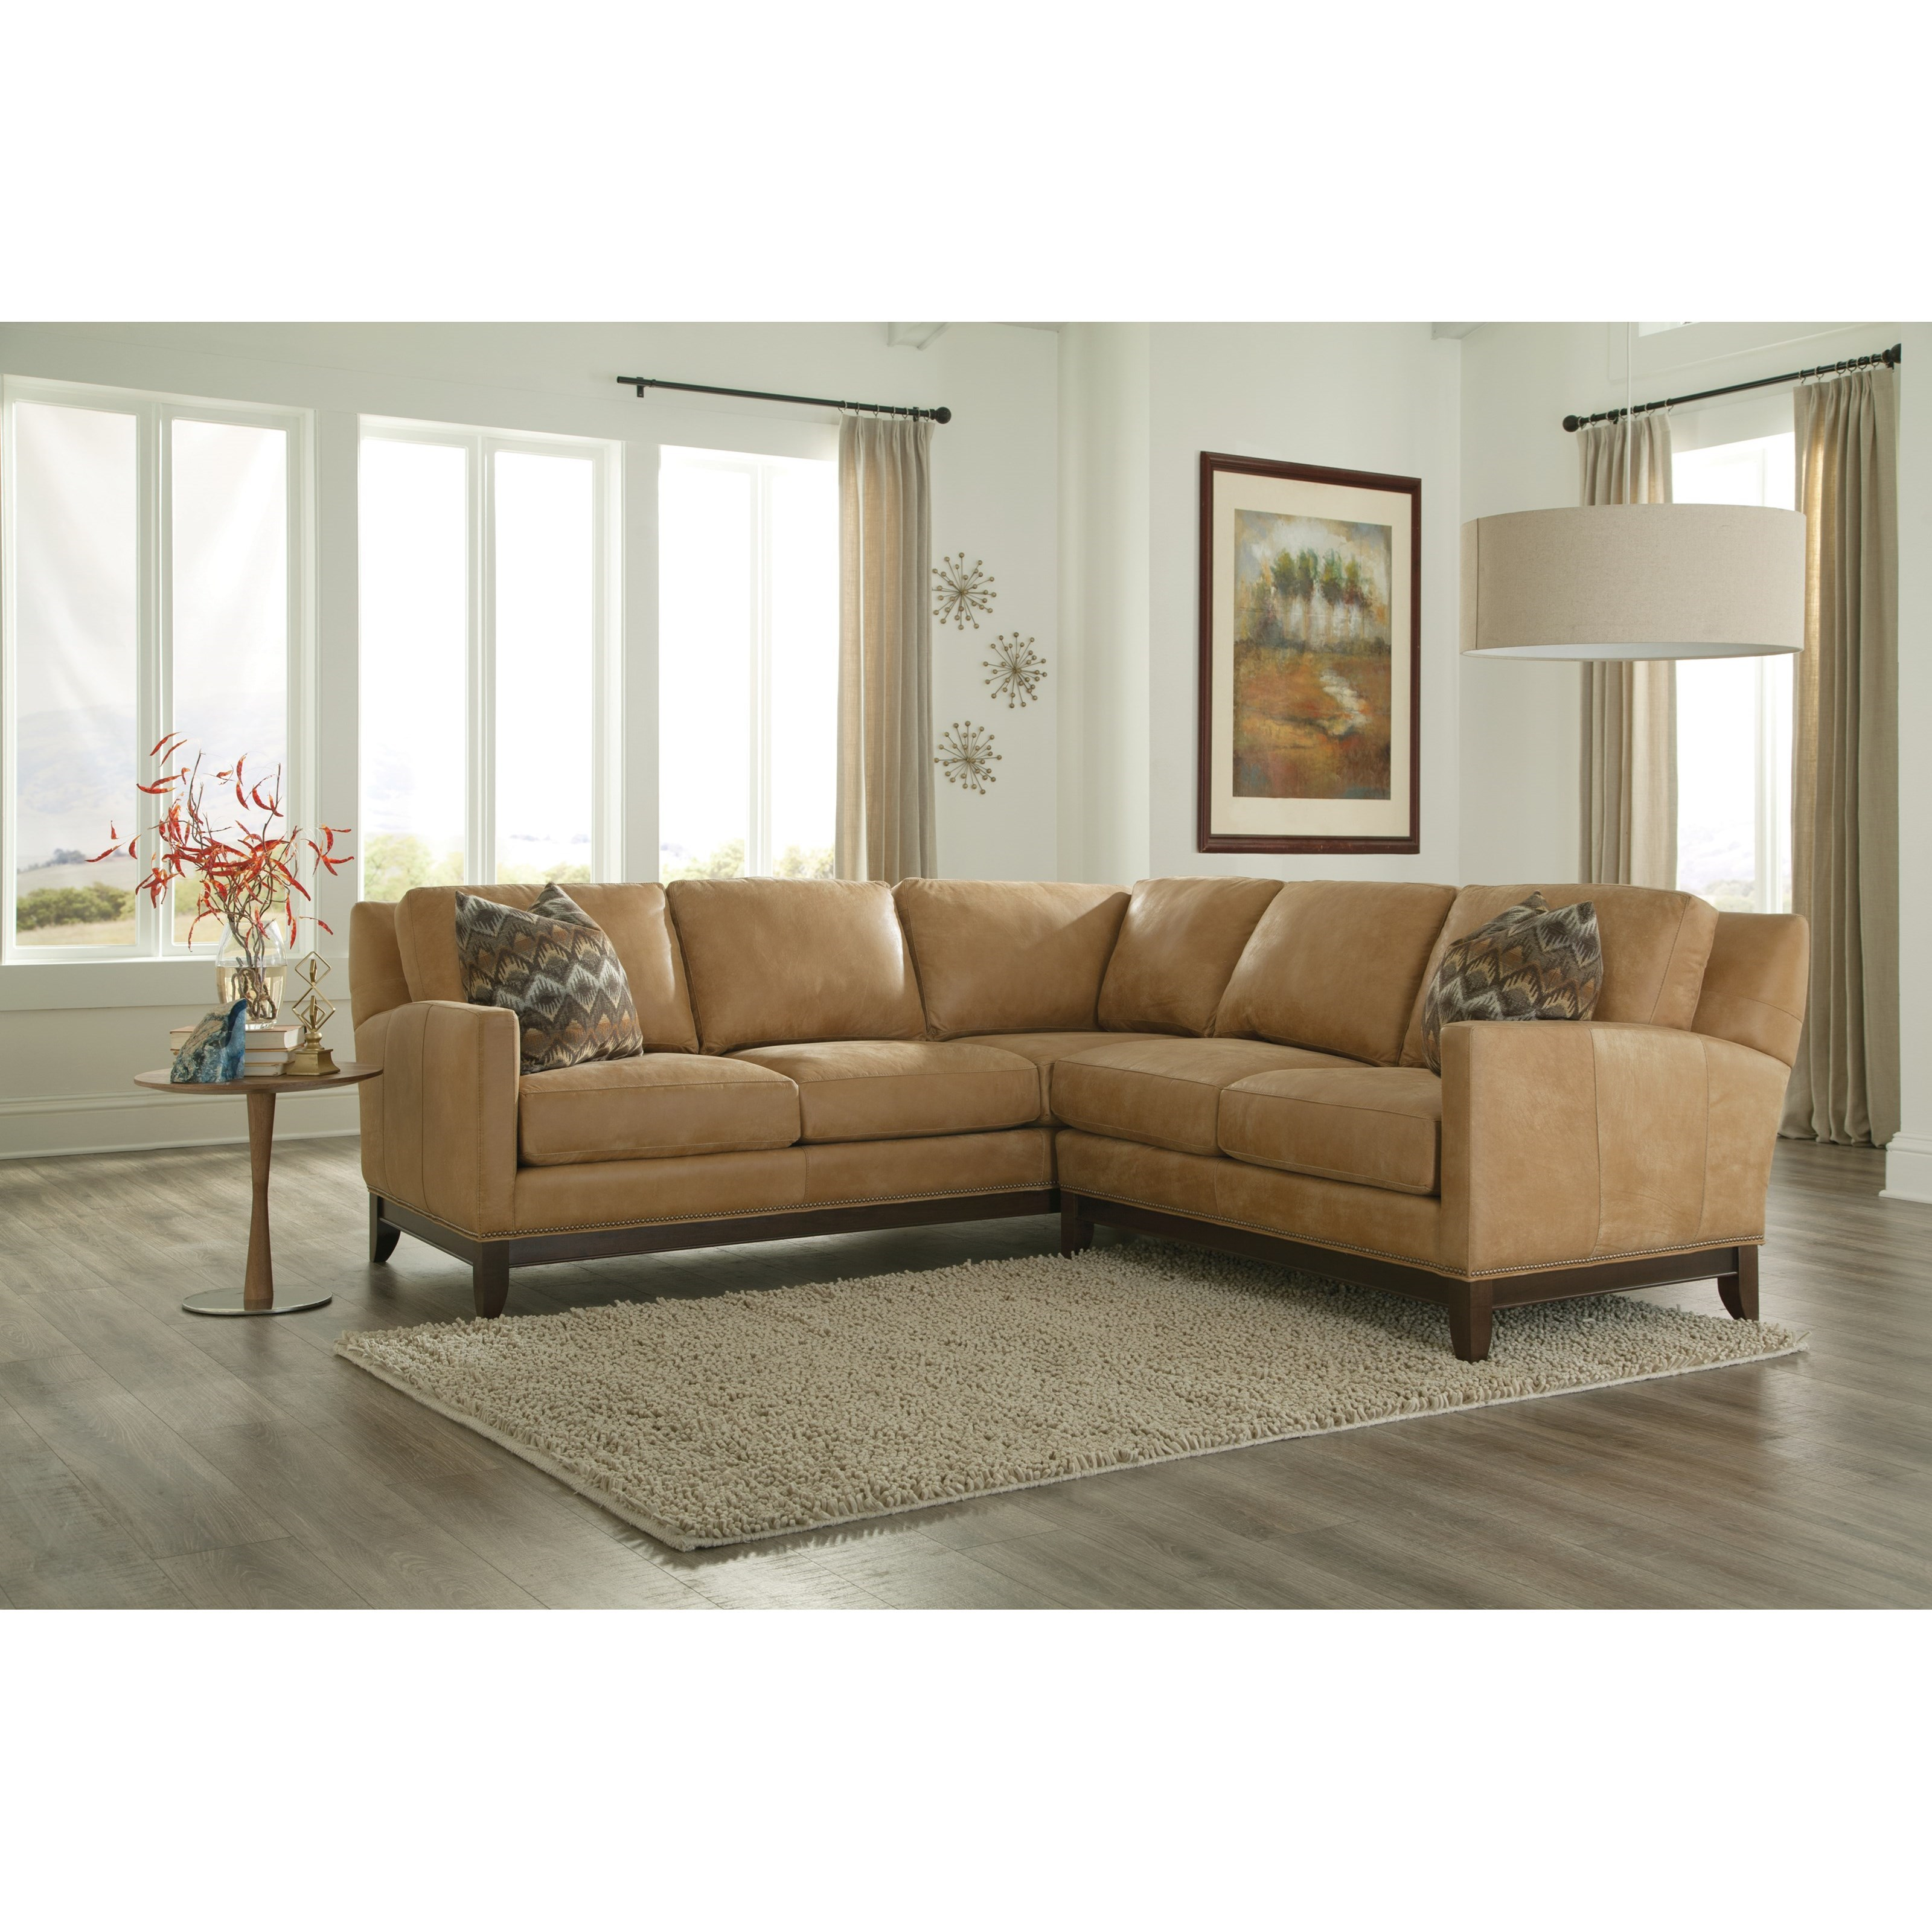 238 Sectional Sofa by Smith Brothers at Pilgrim Furniture City